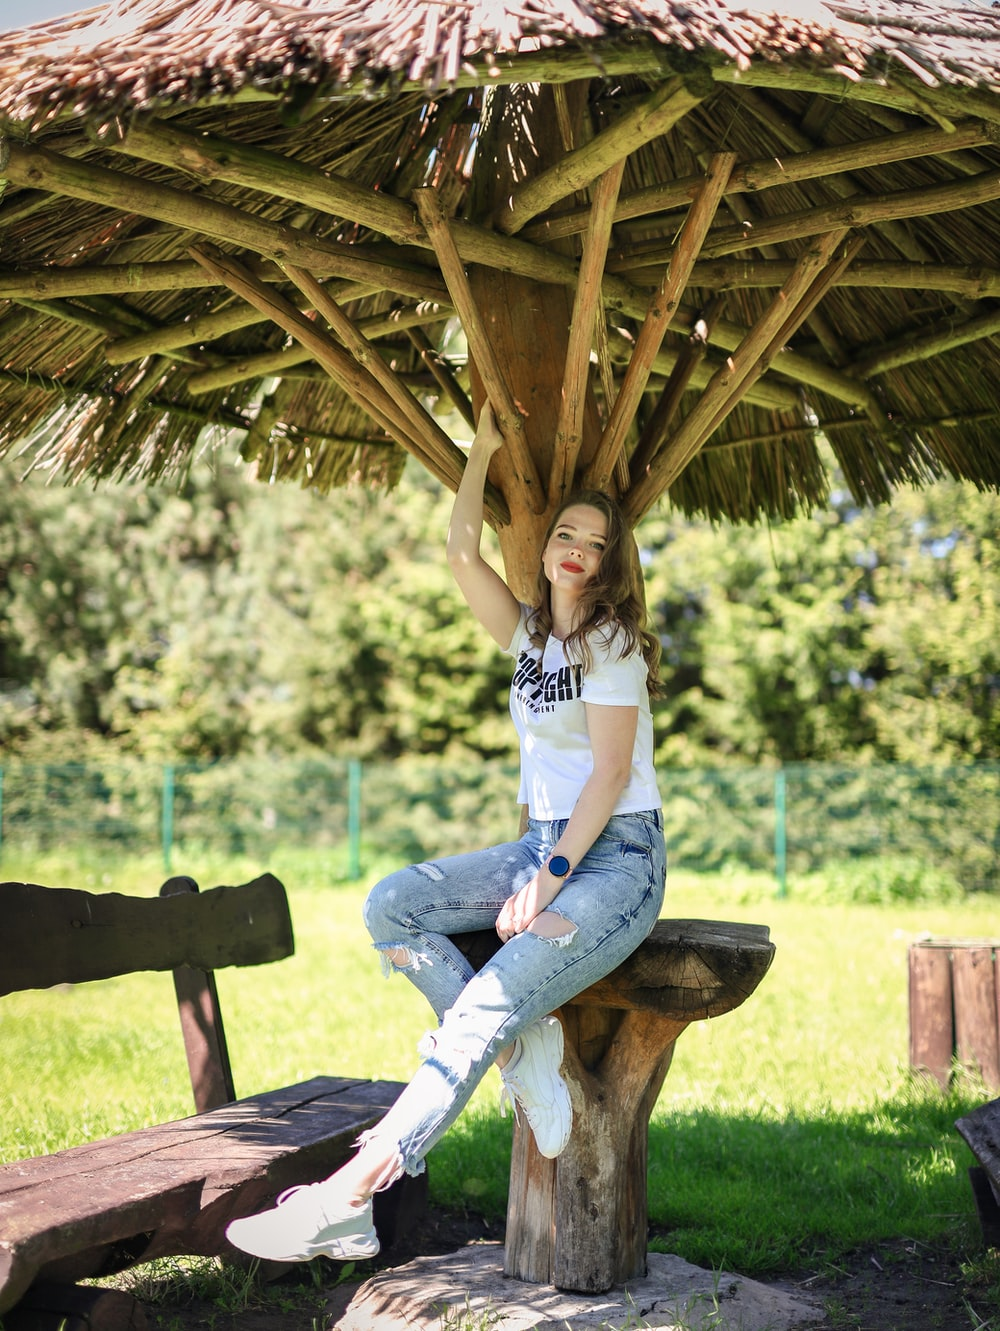 woman in white t-shirt and blue denim jeans sitting on brown wooden bench during daytime